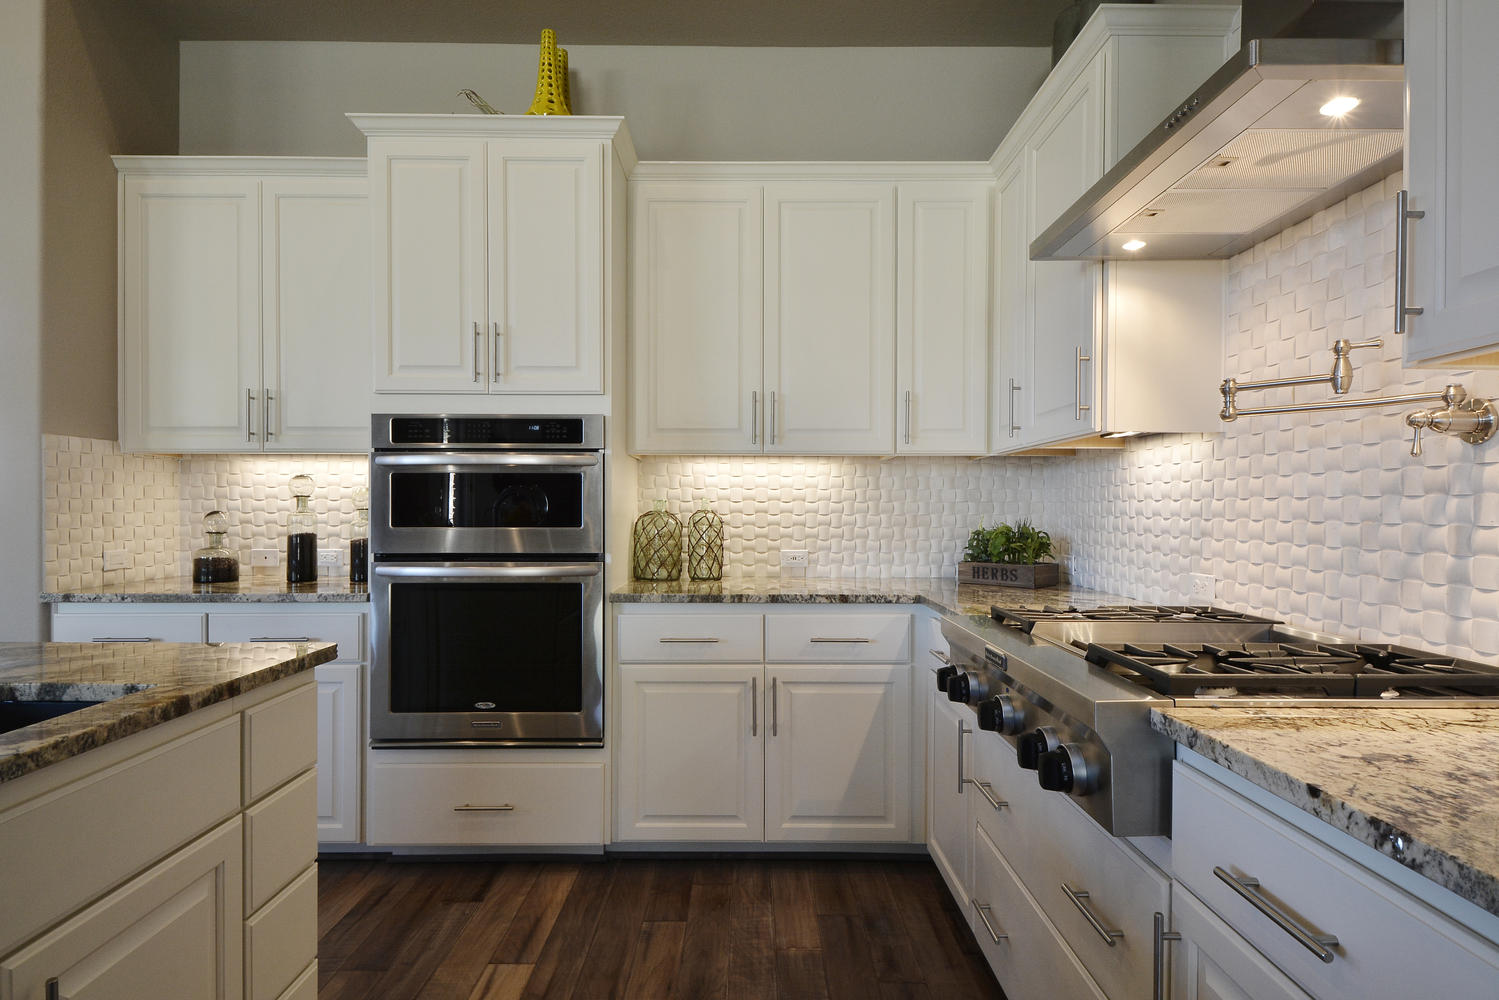 White Kitchen Cabinets - Burrows Cabinets - central Texas builder-direct custom cabinets